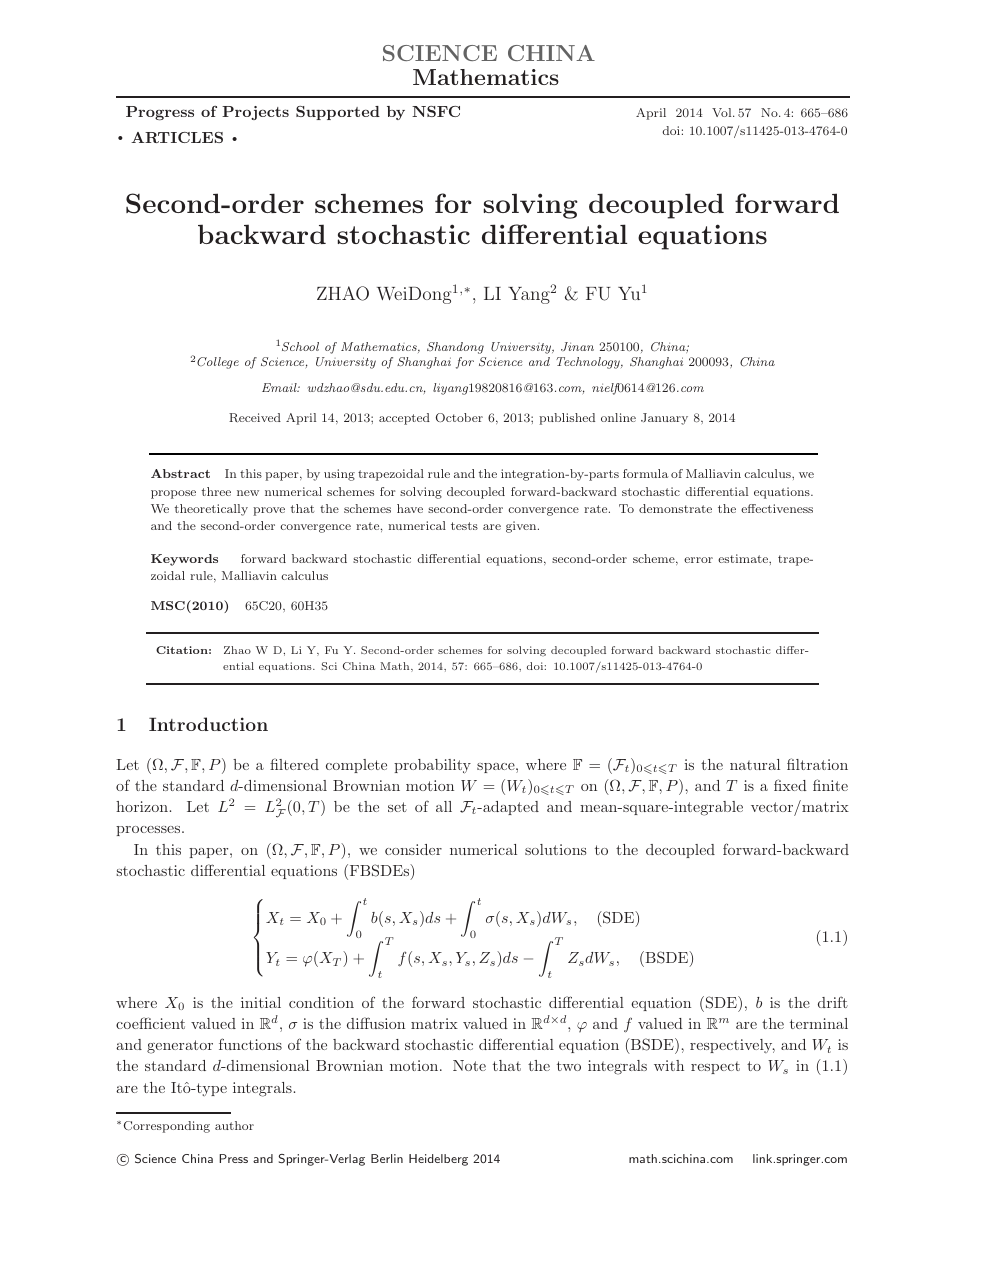 Second-order schemes for solving decoupled forward backward